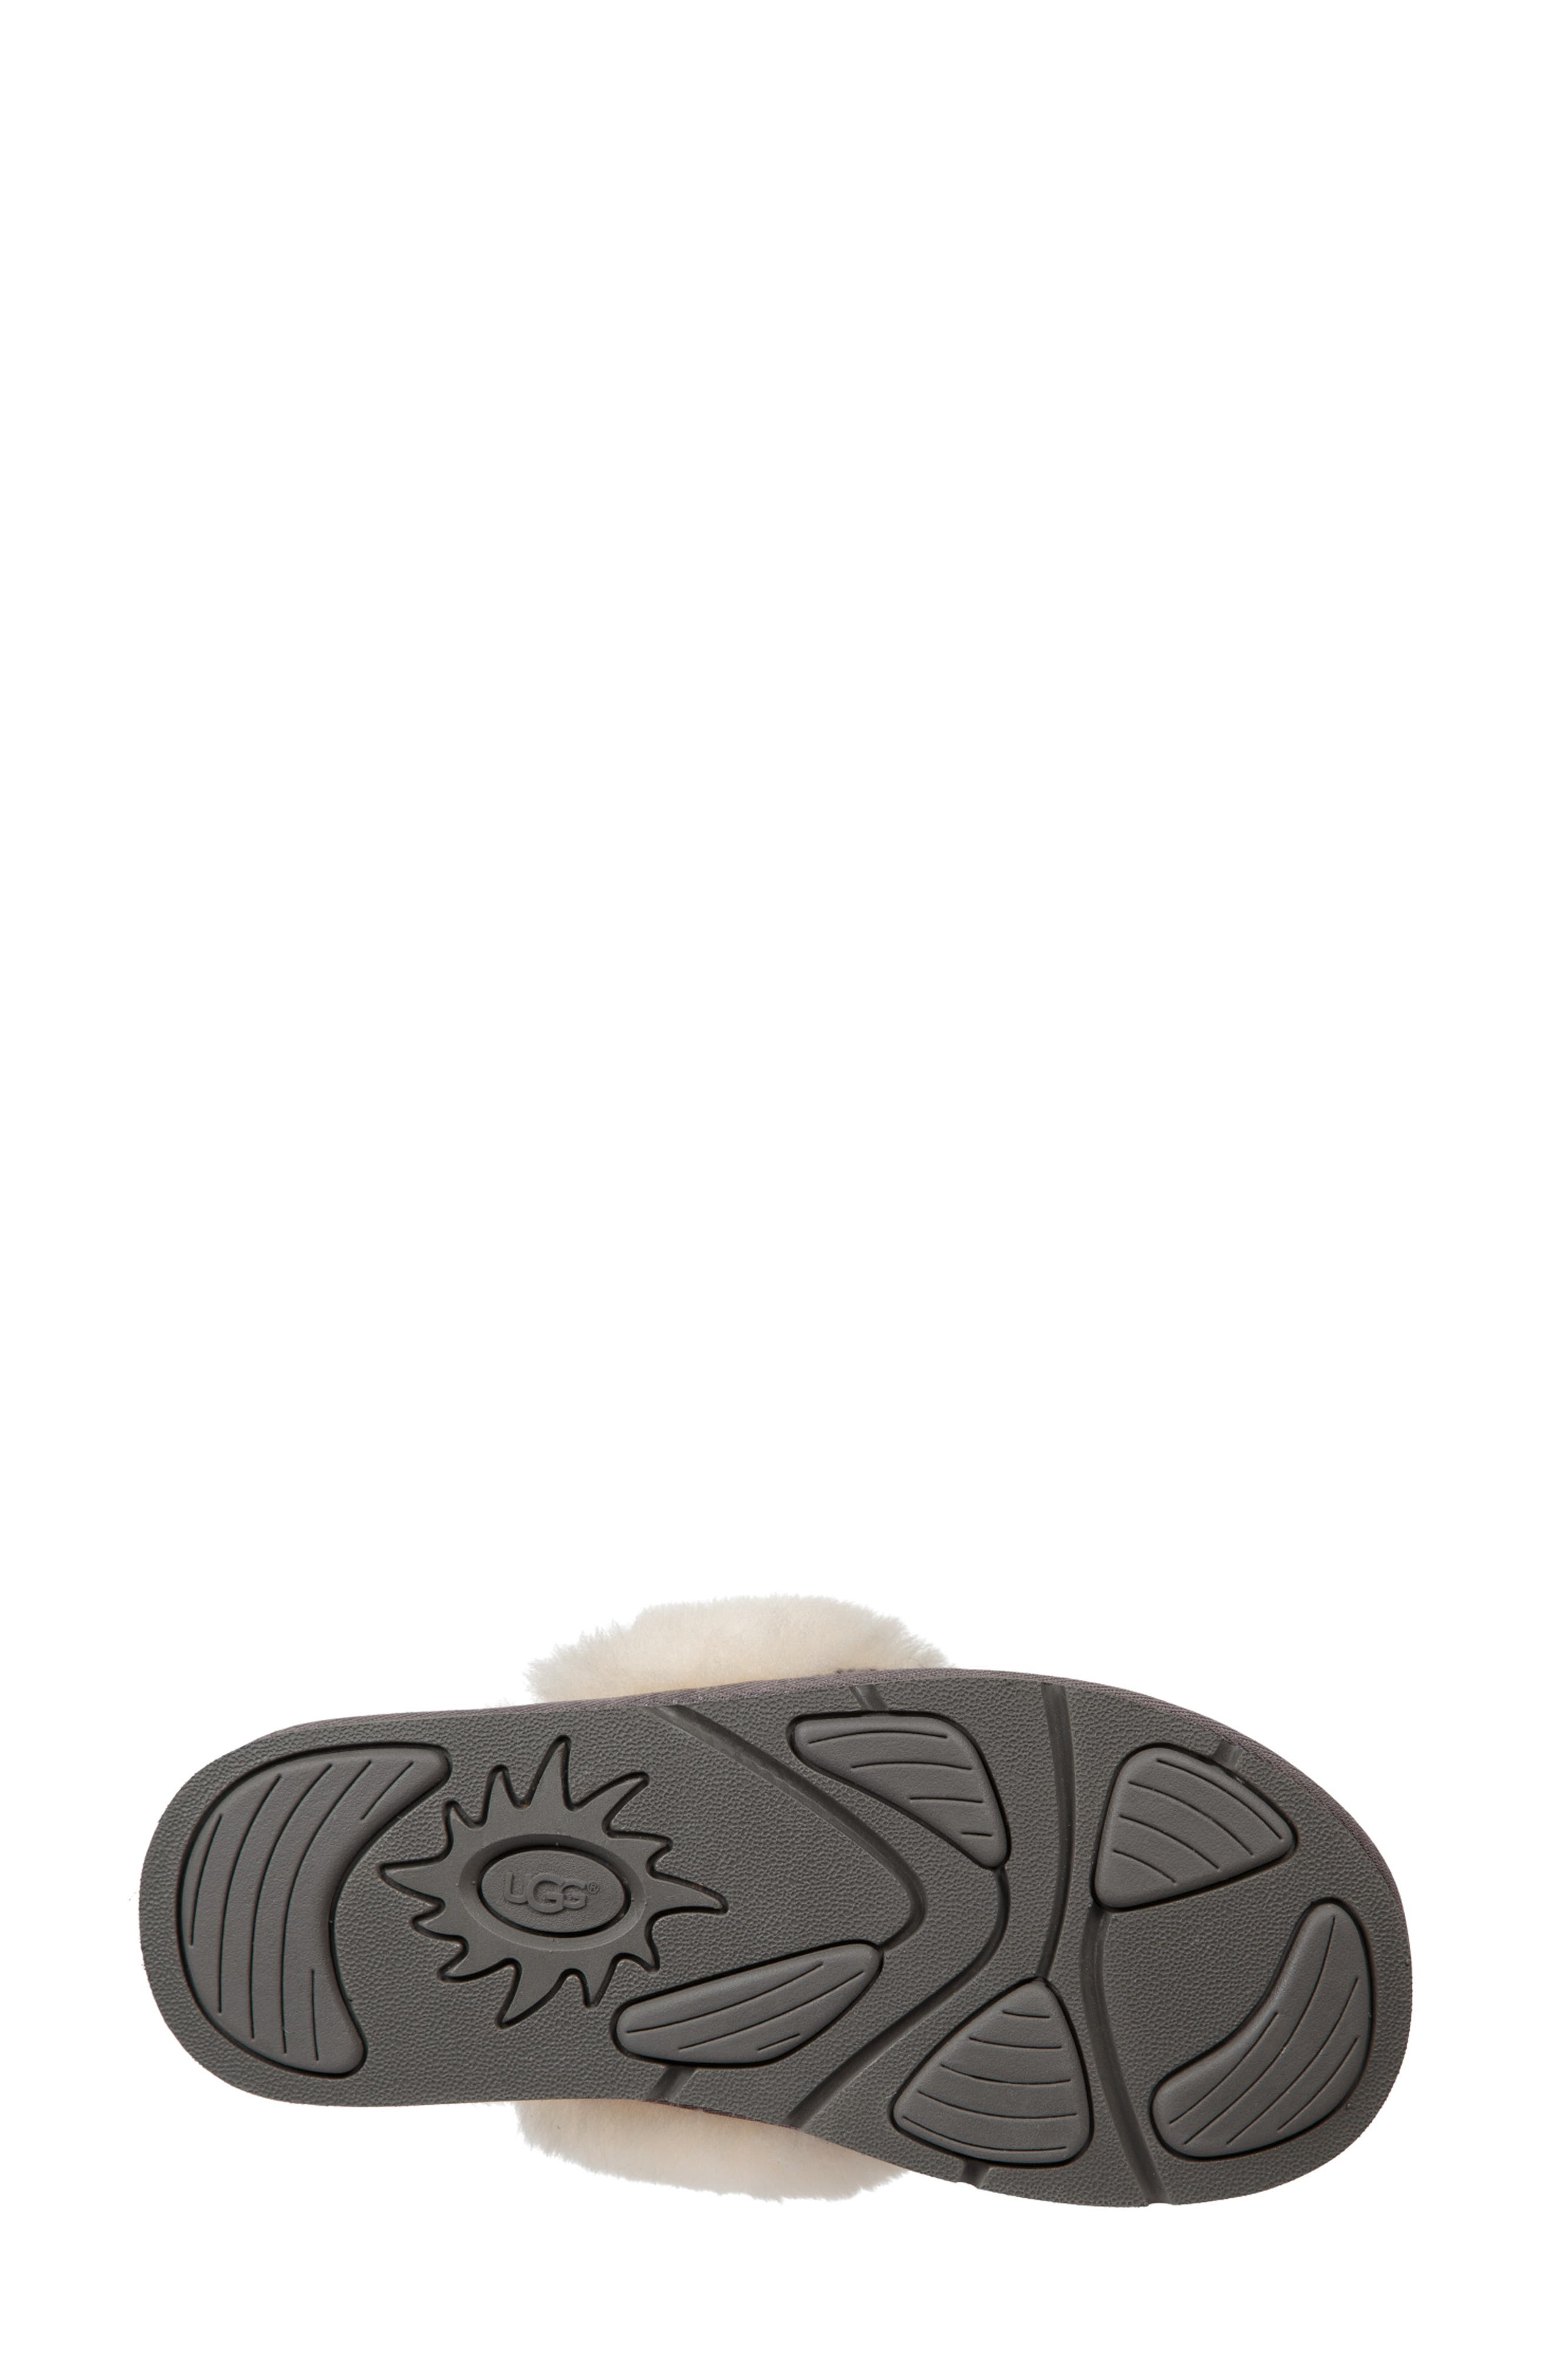 UGG<SUP>®</SUP>, Cozy Knit Genuine Shearling Slipper, Alternate thumbnail 5, color, CHARCOAL